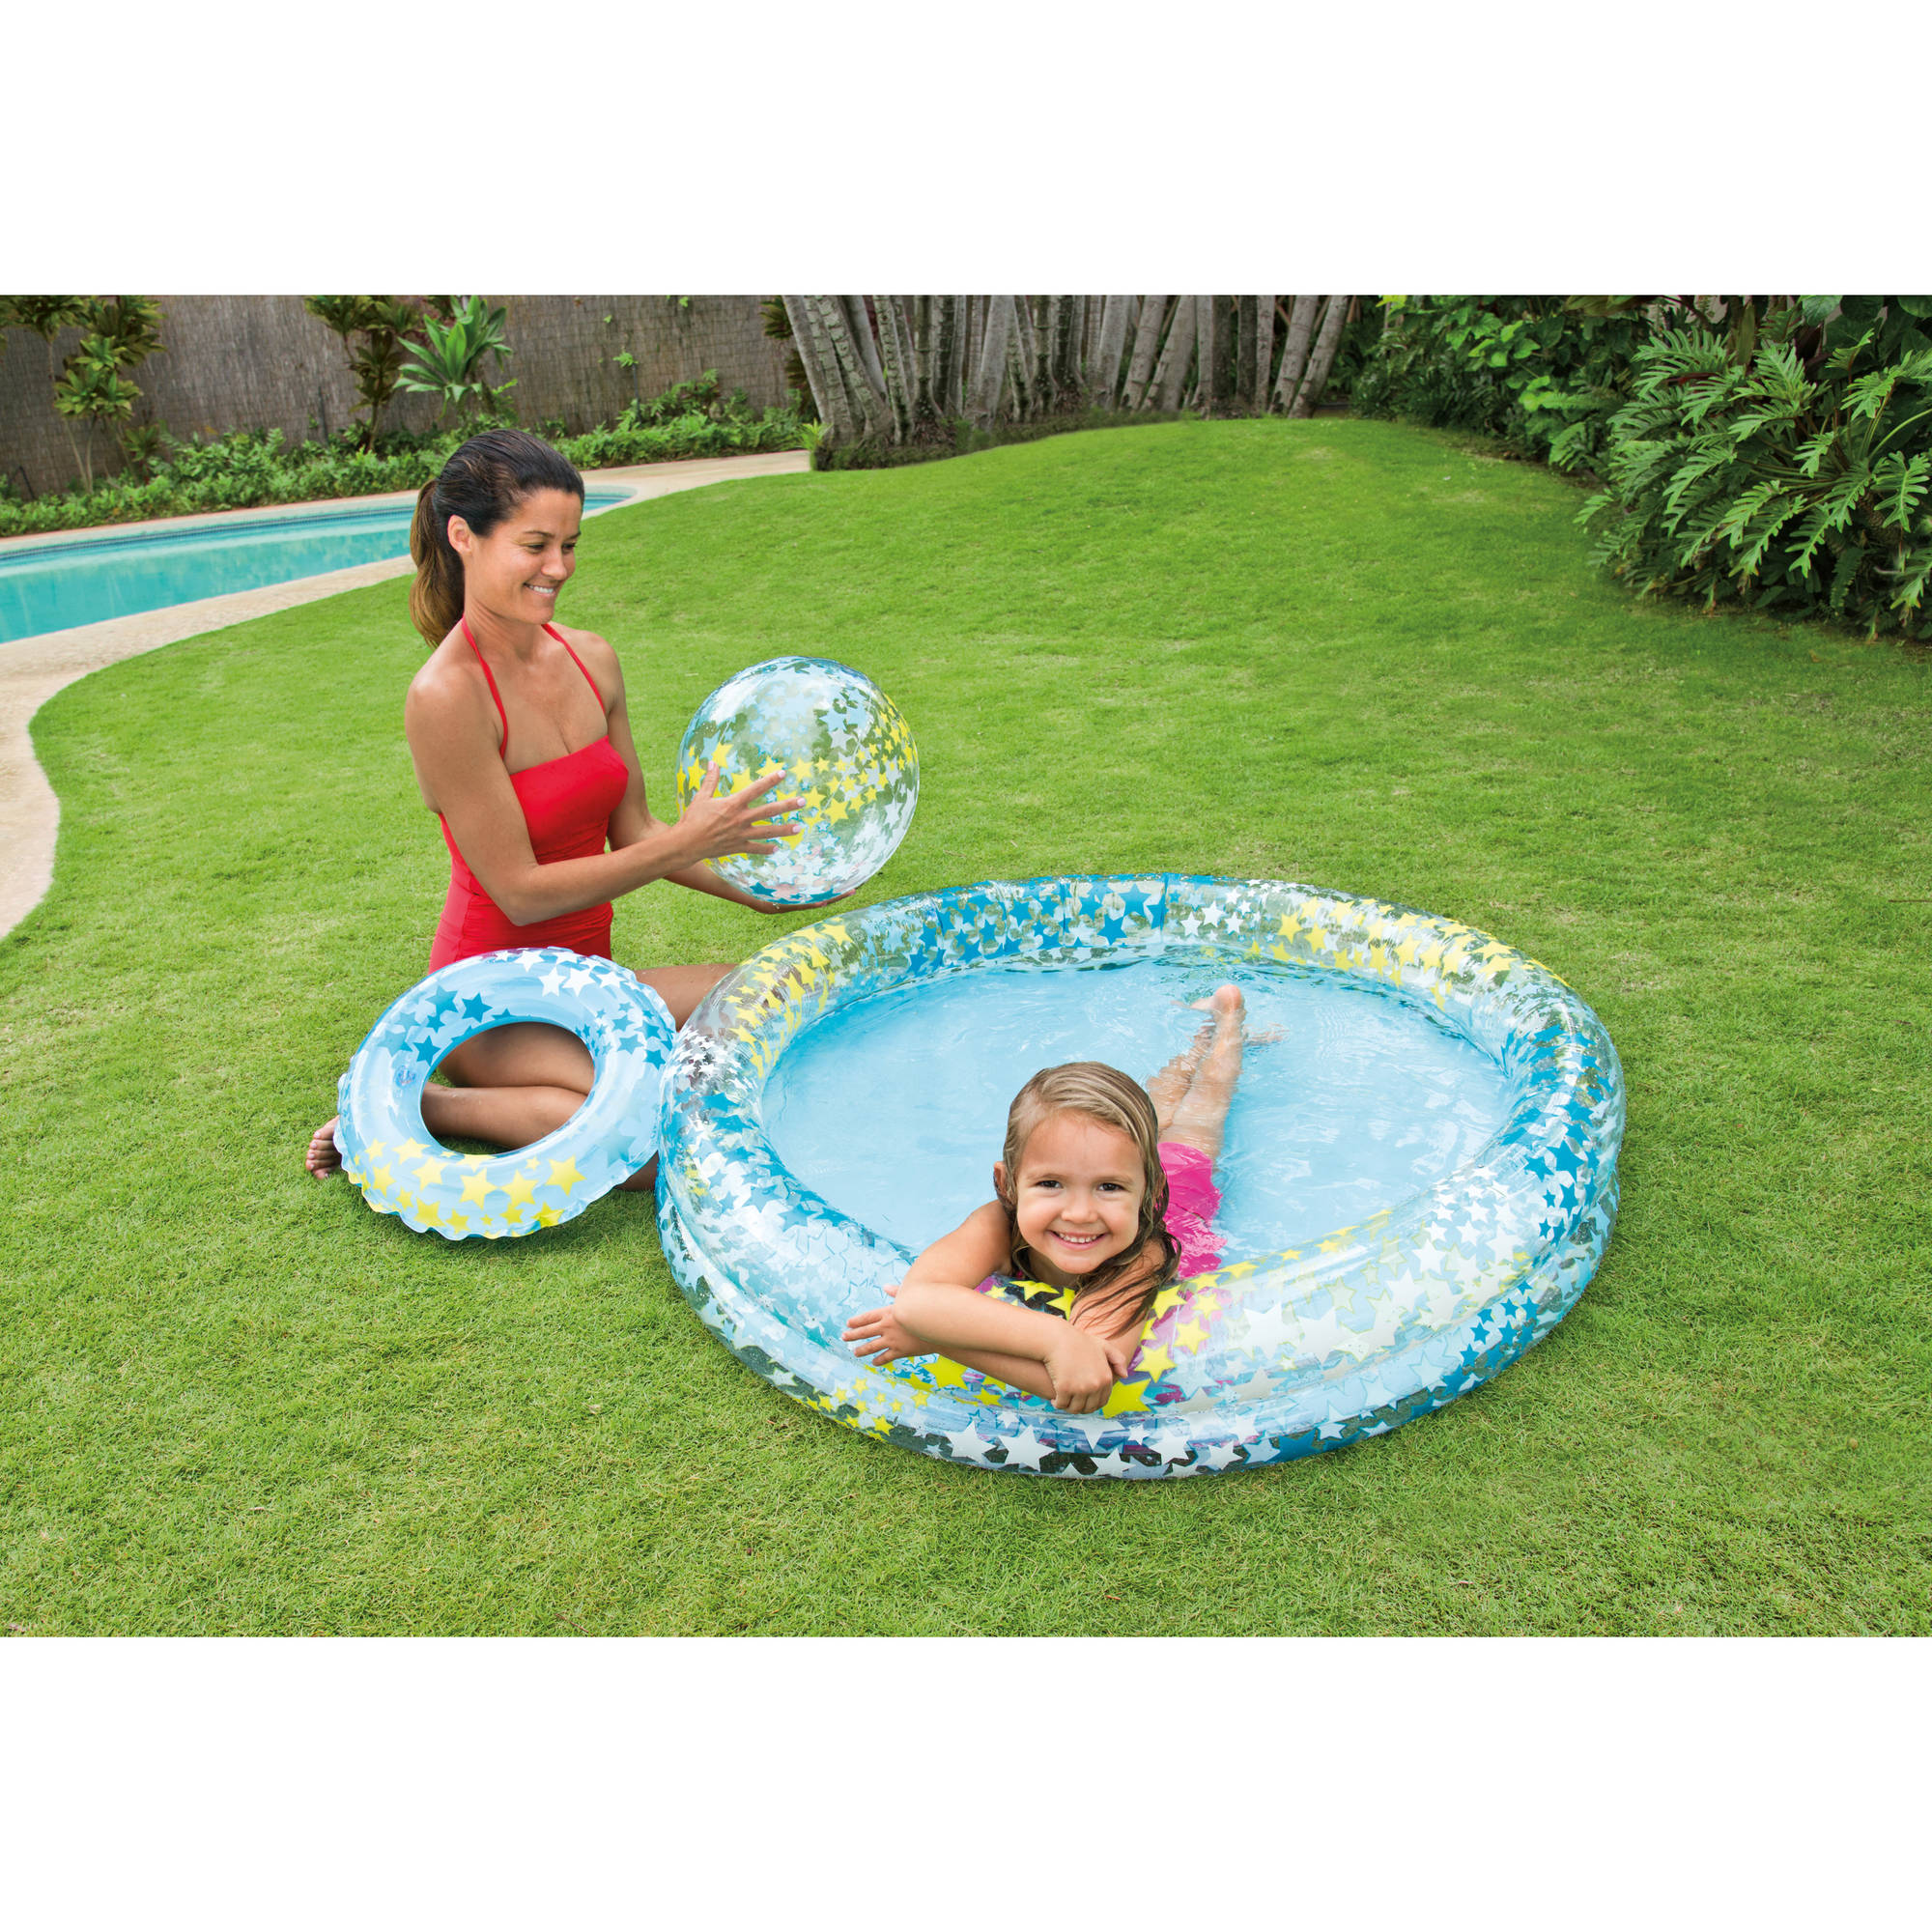 Intex Inflatable Stargaze Kiddie Pool Set